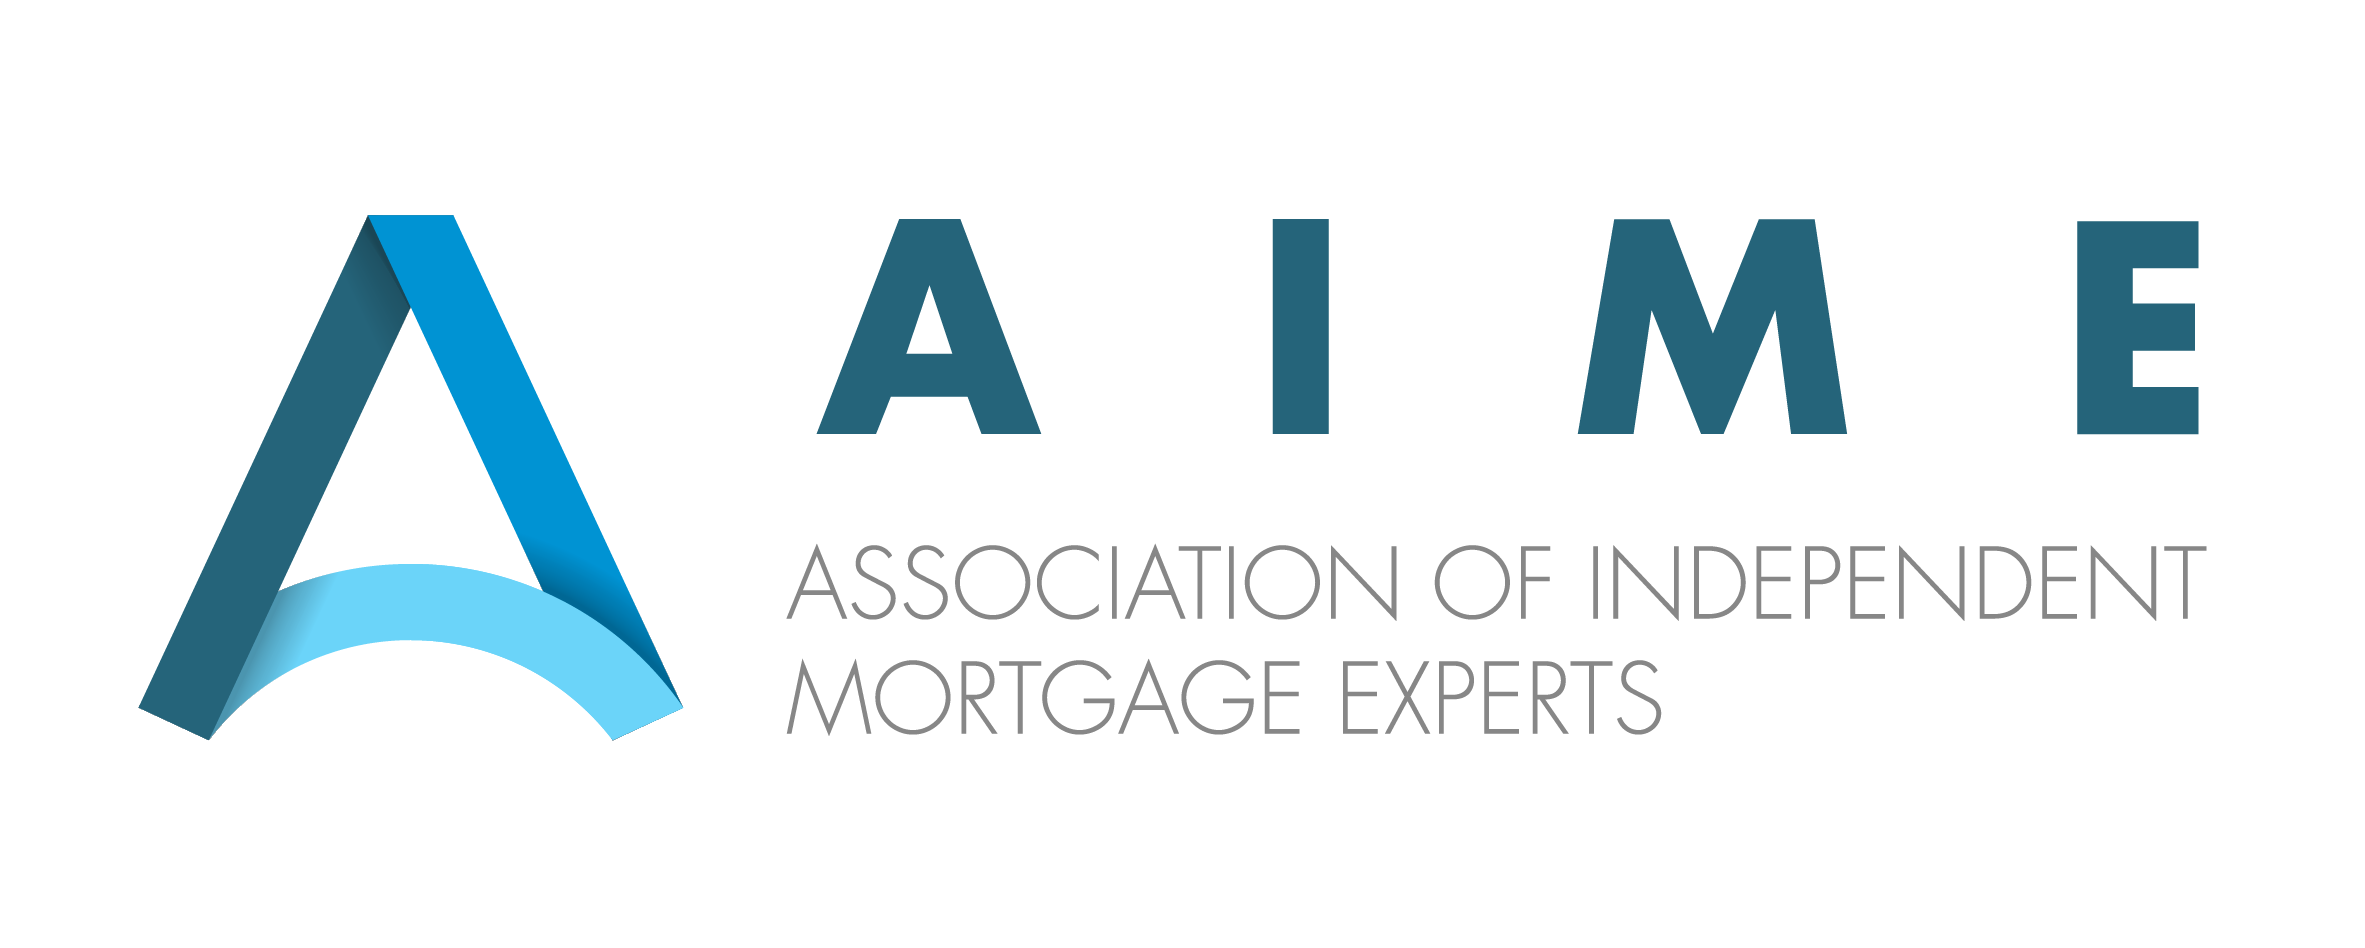 AIME, Association of Independent Mortgage Experts, Mortgage Broker, Mortgage Professional